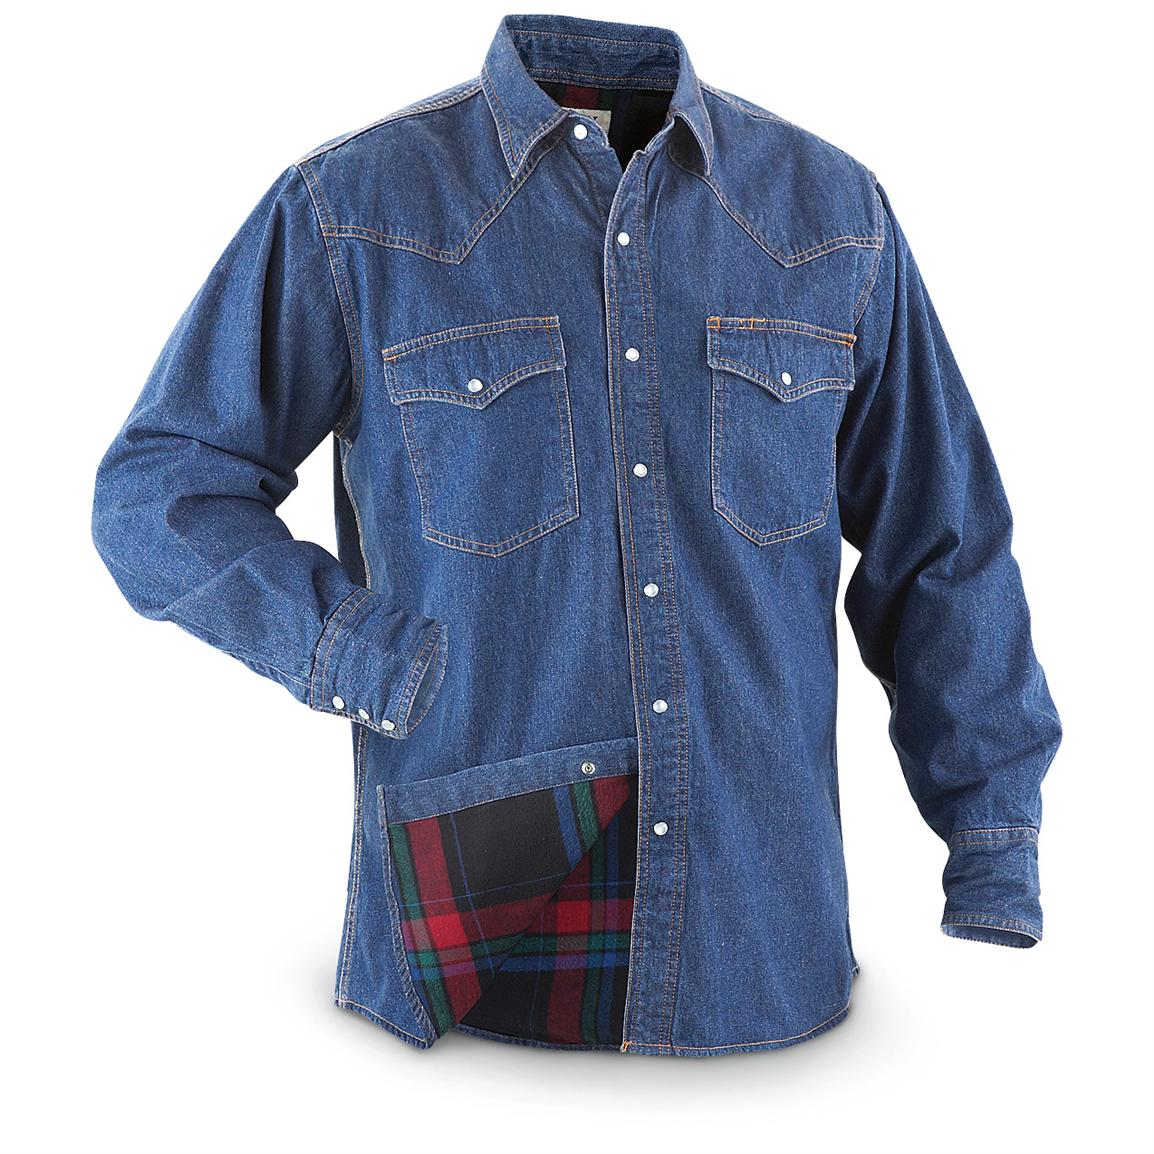 Ely Cattleman® Flannel - lined Denim Work Shirts